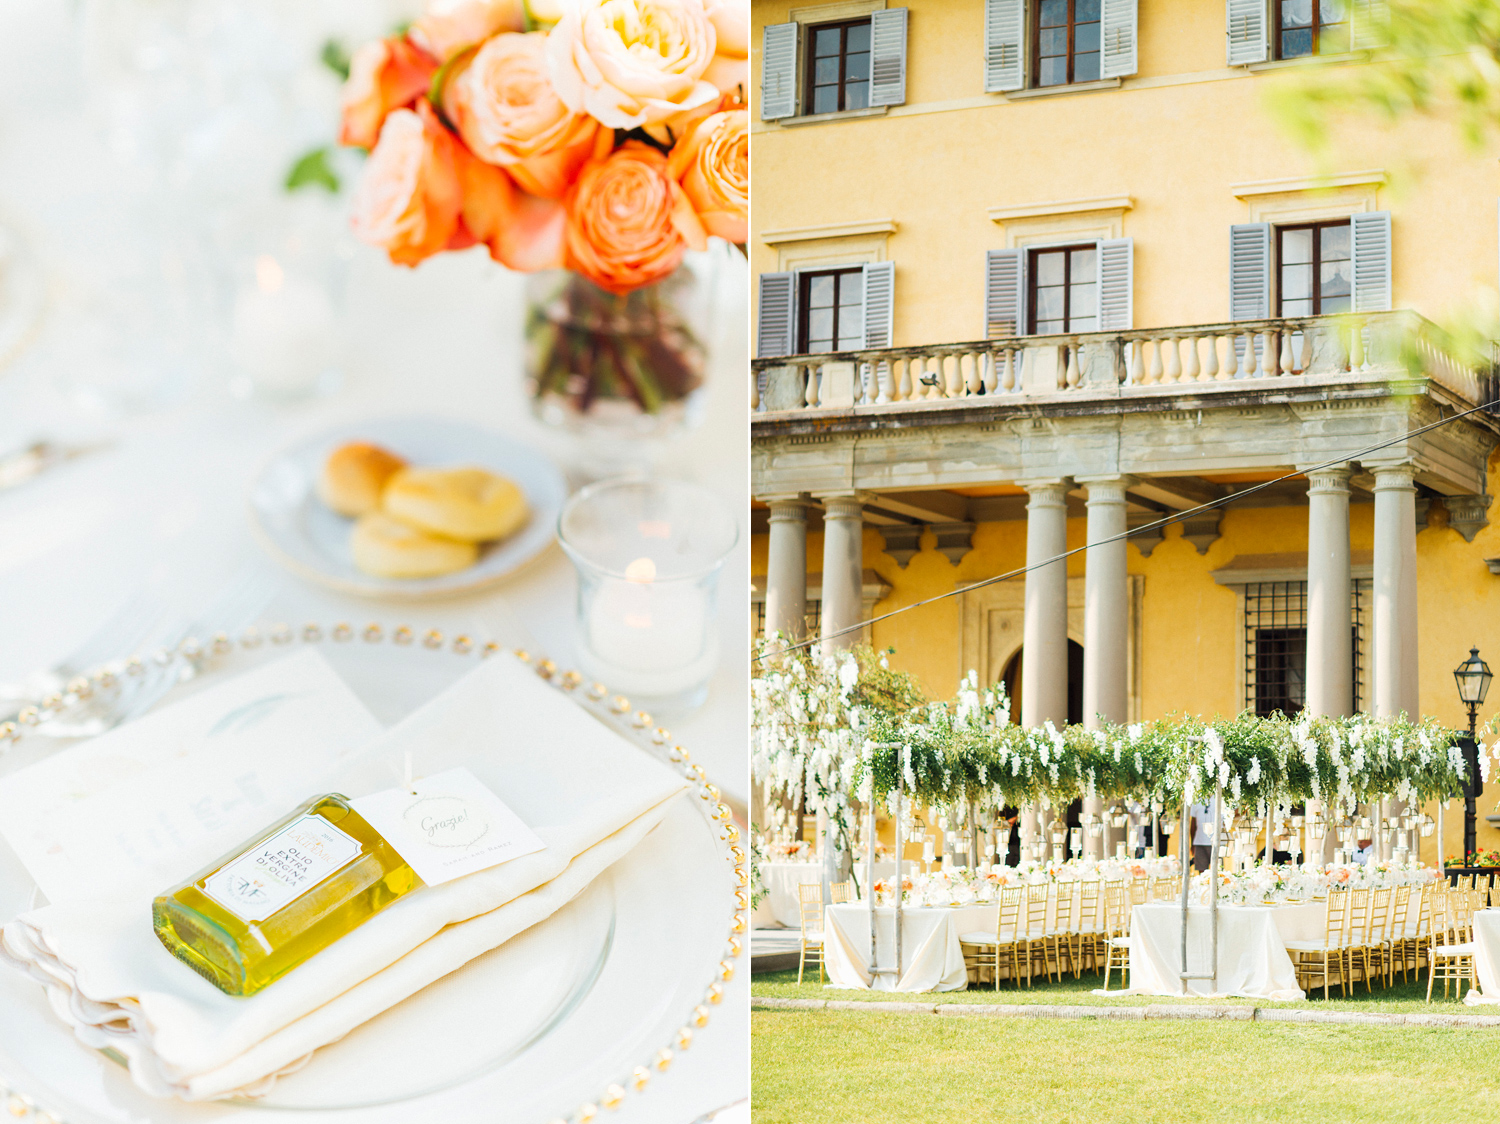 katie_mitchell_wedding_florence_tuscany_villa_di_miano_wedding_photography_46.jpg